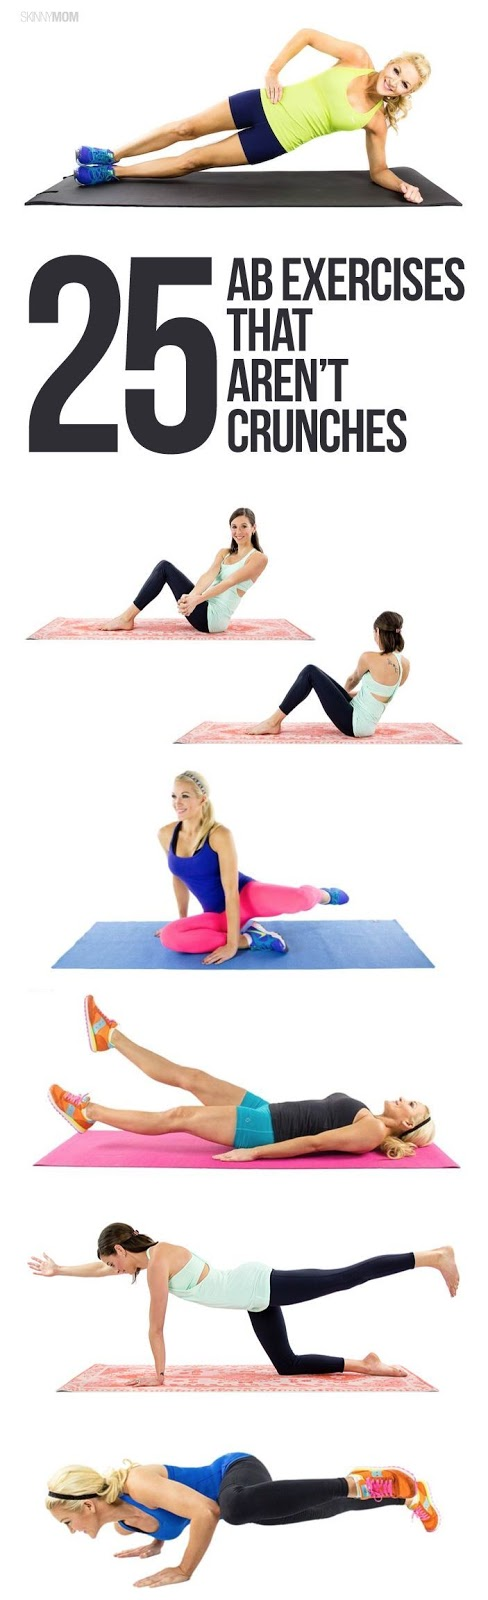 25 Ab Exercises That Arent Crunches